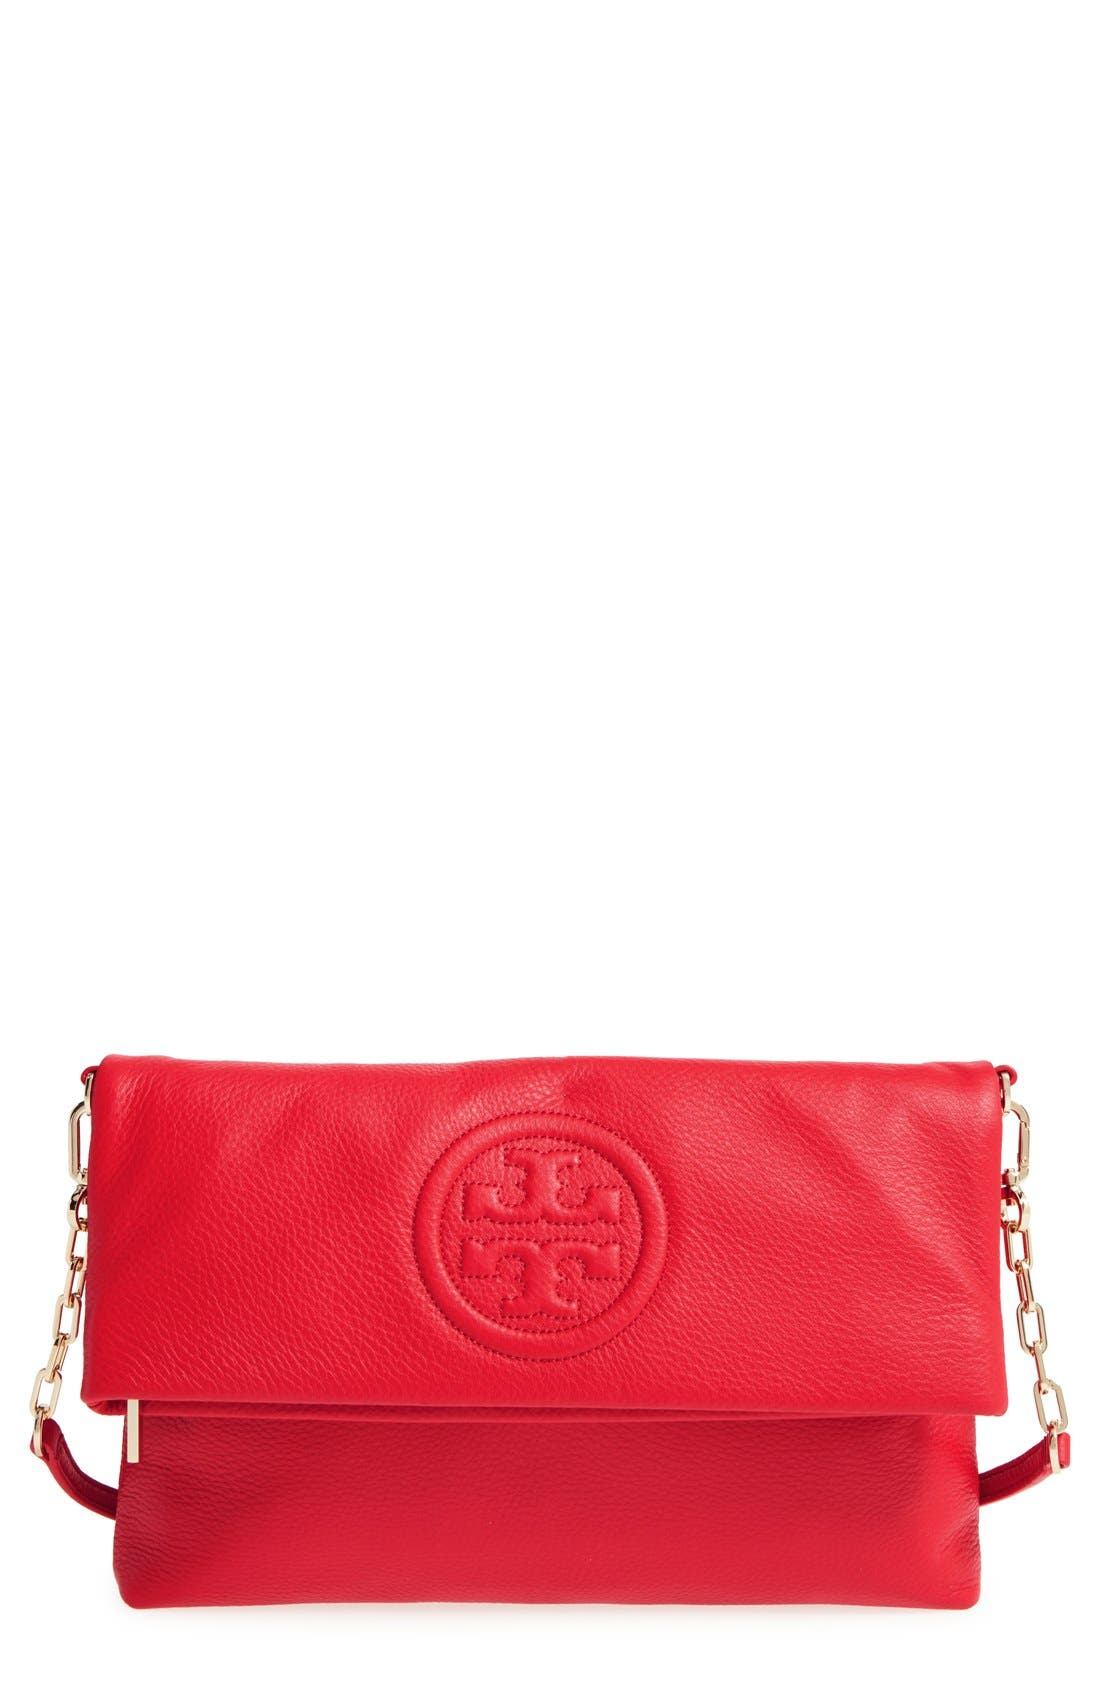 Alternate Image 1 Selected - Tory Burch 'Bombé' Leather Foldover Clutch